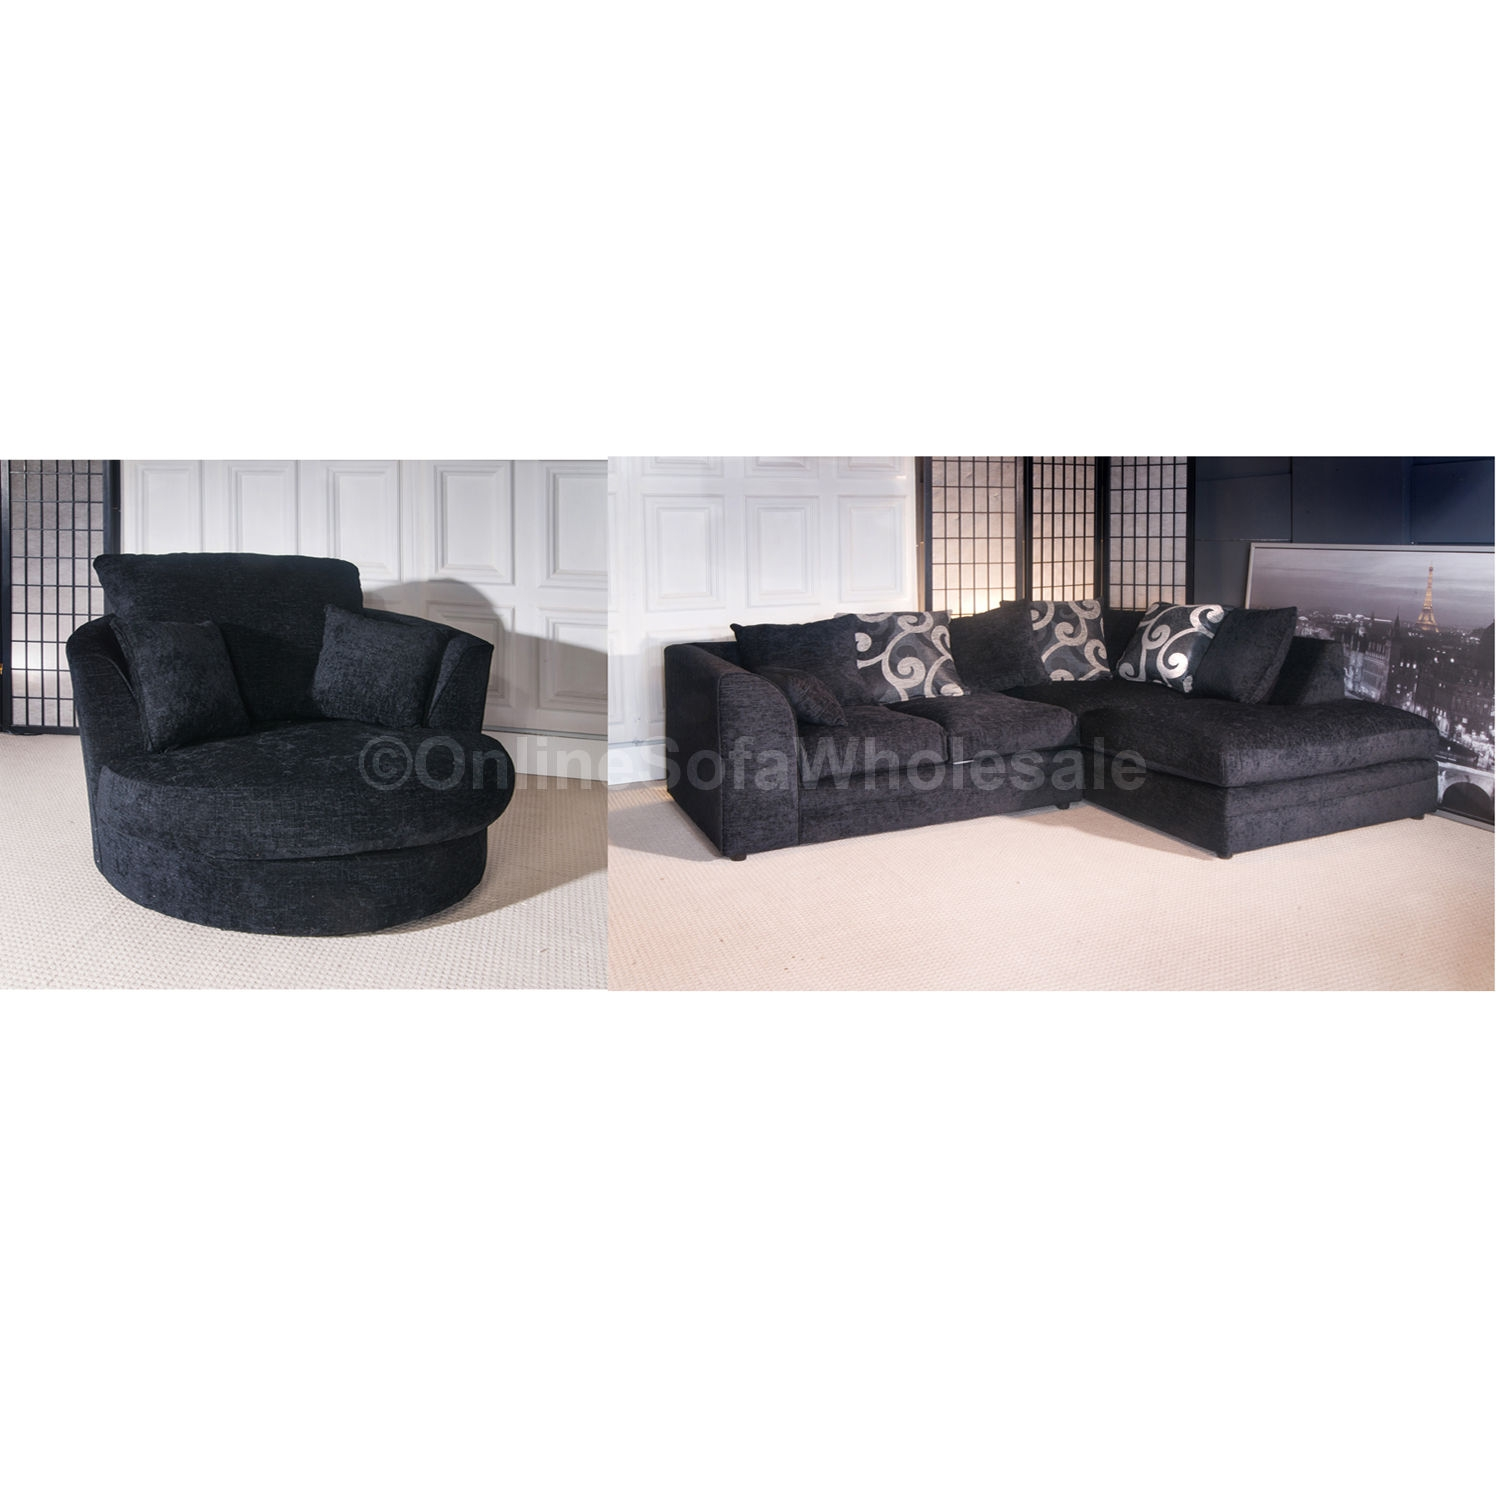 Dfs Cuddler Sofa Images Colorado Leather Sofa Images